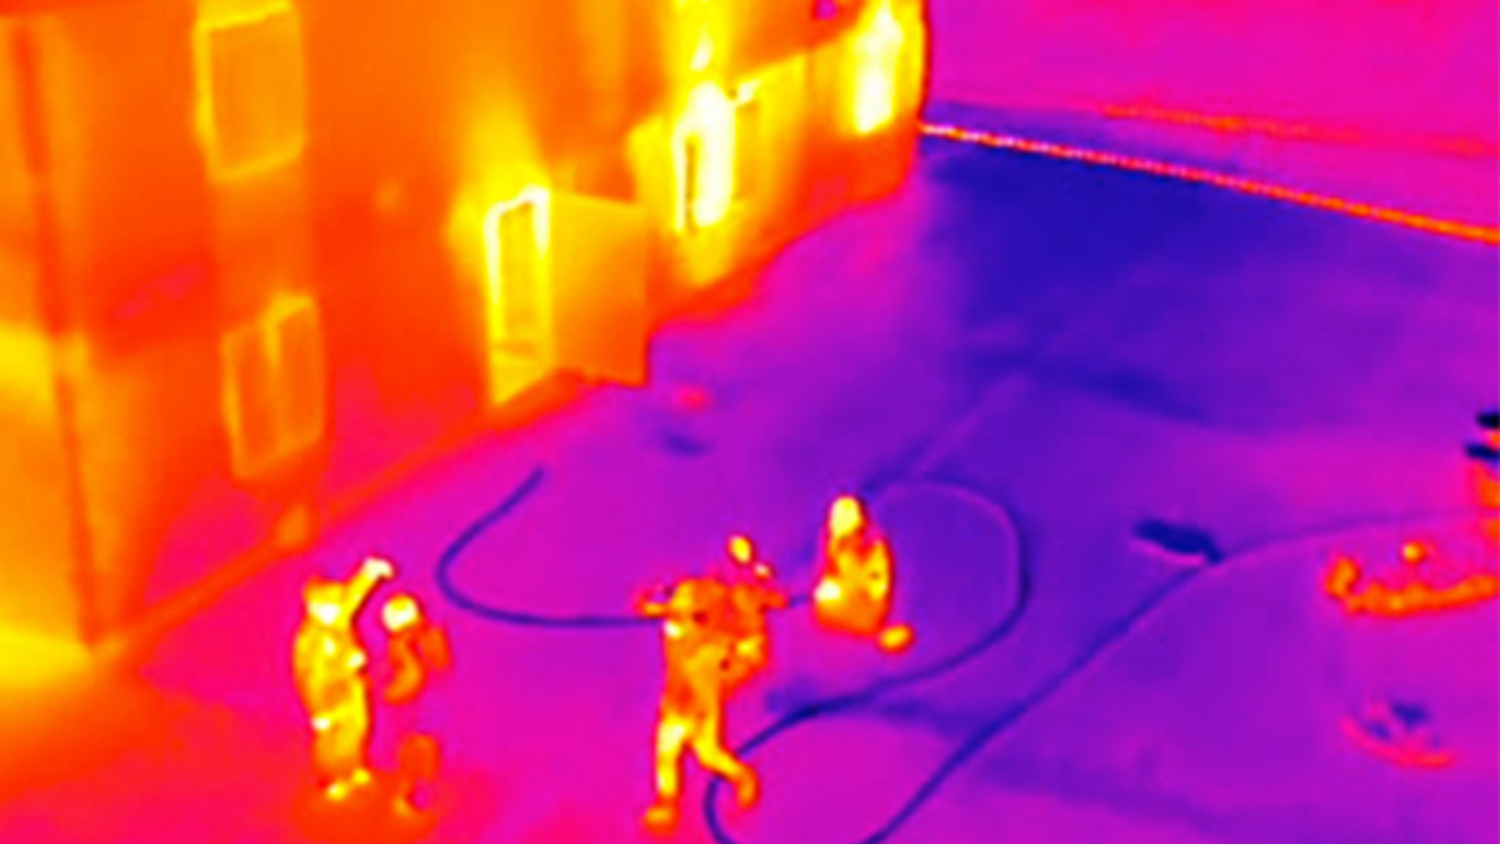 DJI™ 's Zenmuse XT is powered by FLIR, and has seamless integration in many DJI™ drones. It allows agencies to lead search and rescue missions, identify persons and things of interest, and detect hazardous areas.  Image from dji.com/zenmuse-xt.